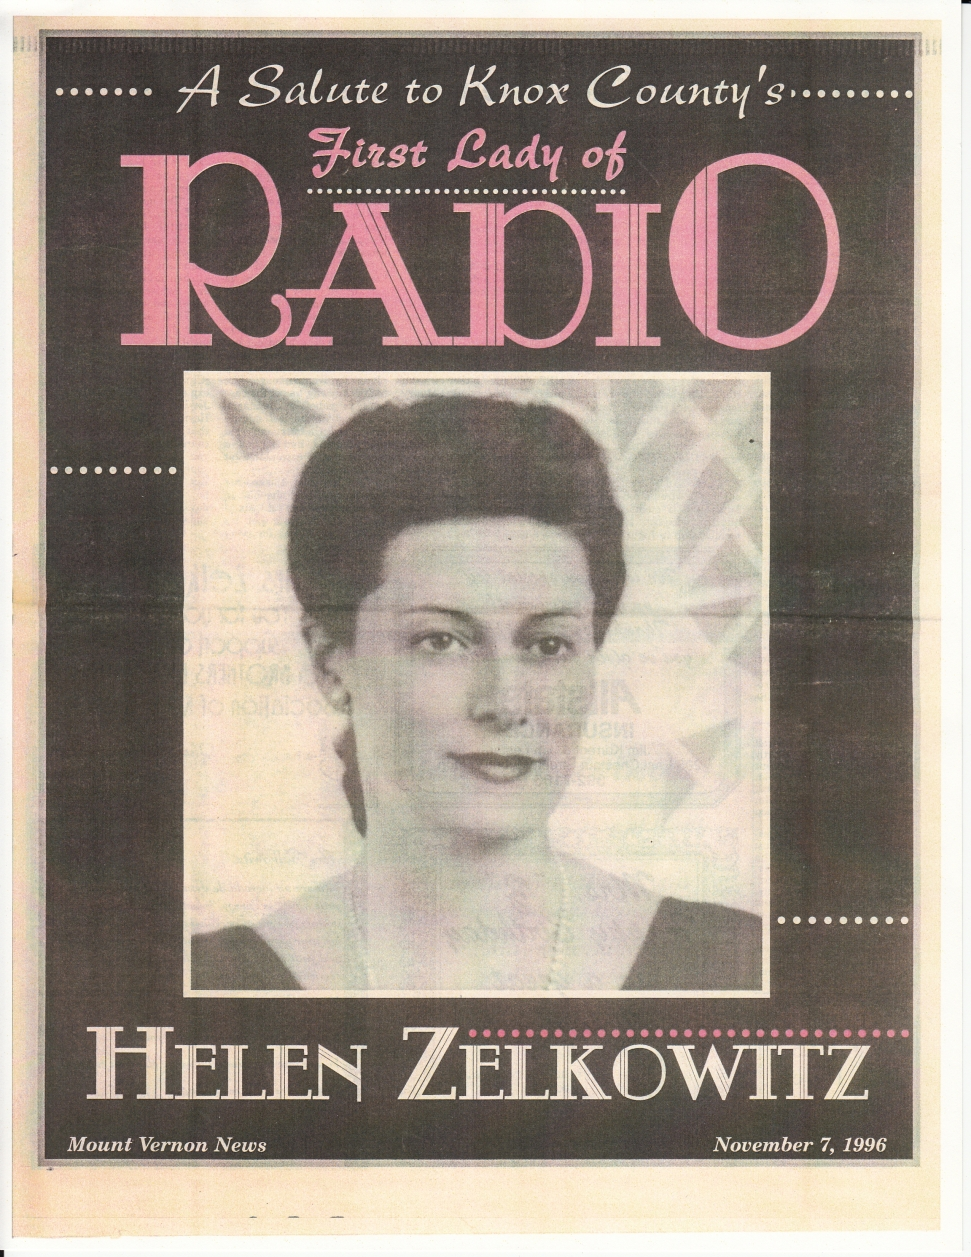 """A tribute to """"First Lady of Radio"""" Helen Zelkowitz appears in the Mount Vernon News, November 1996."""